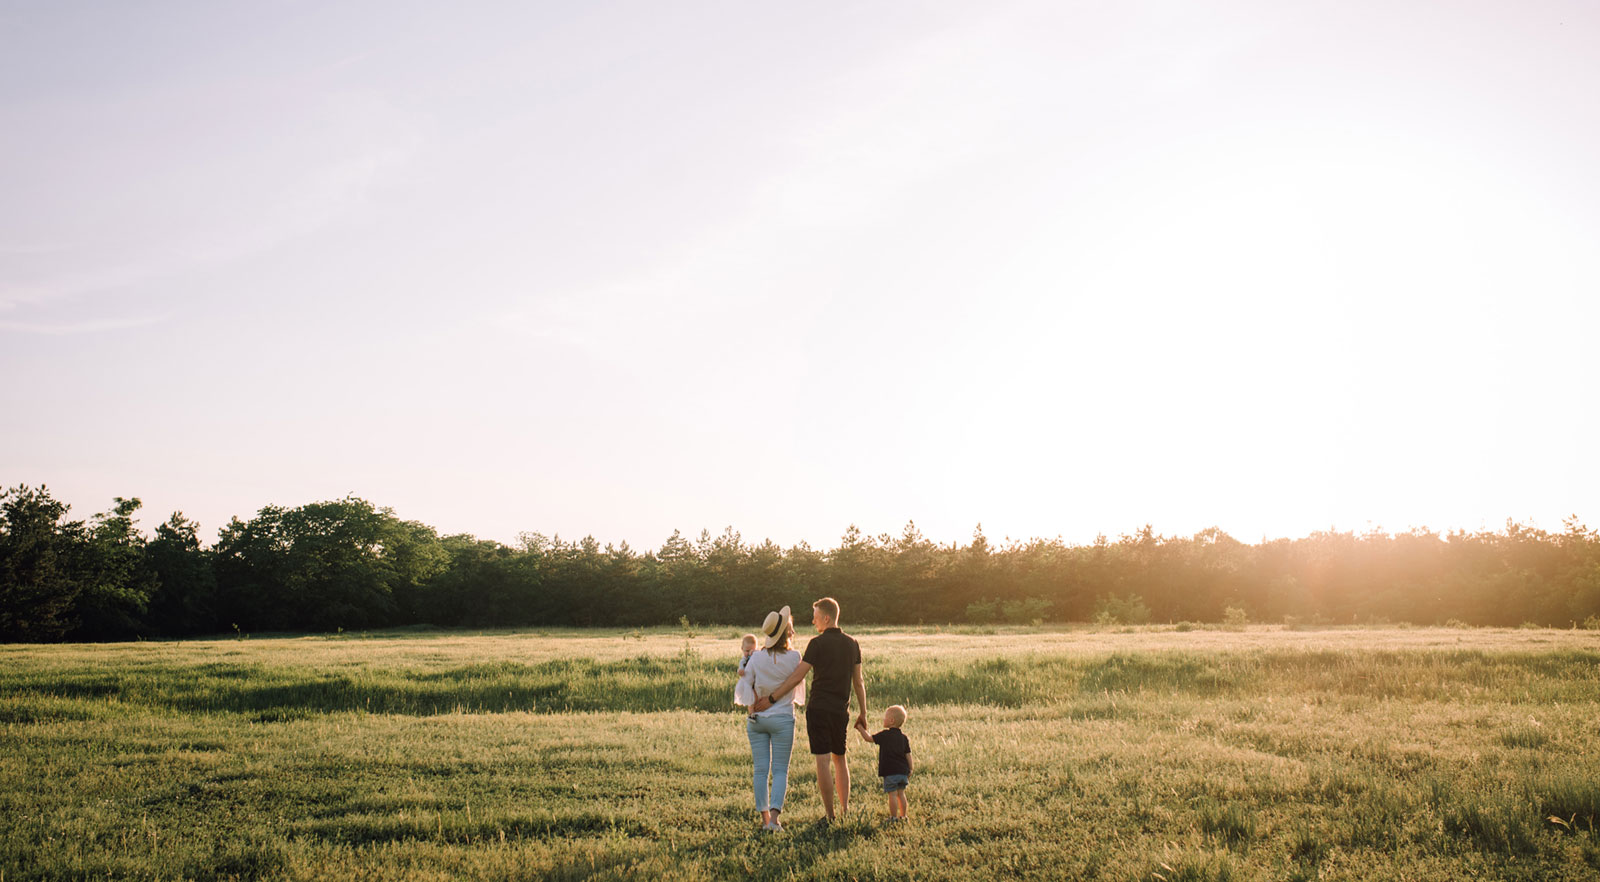 How to Find the Best Life Insurance Policy